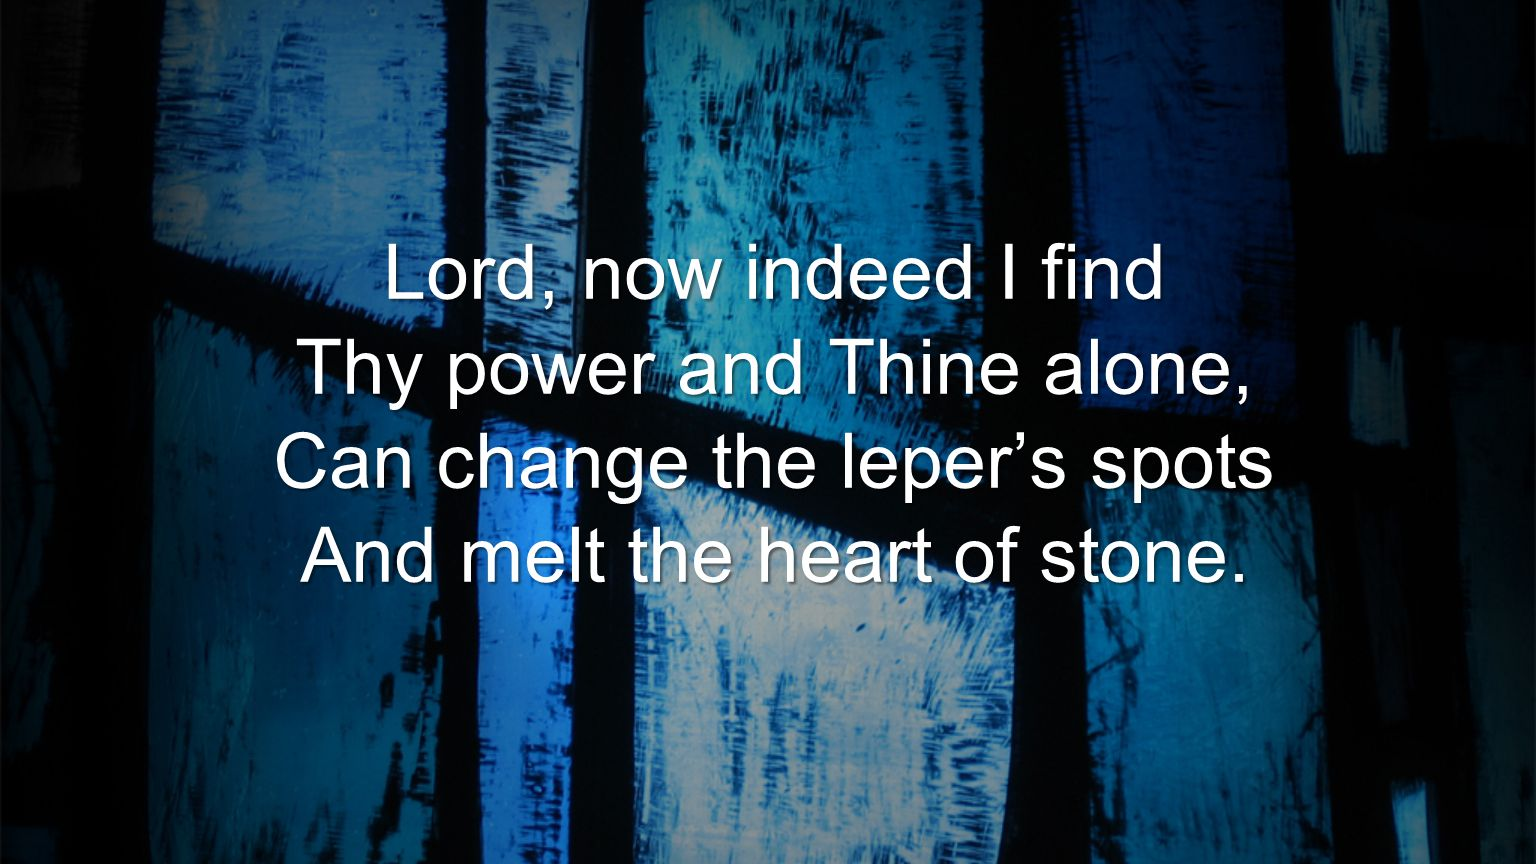 Thy power and Thine alone, Can change the leper's spots